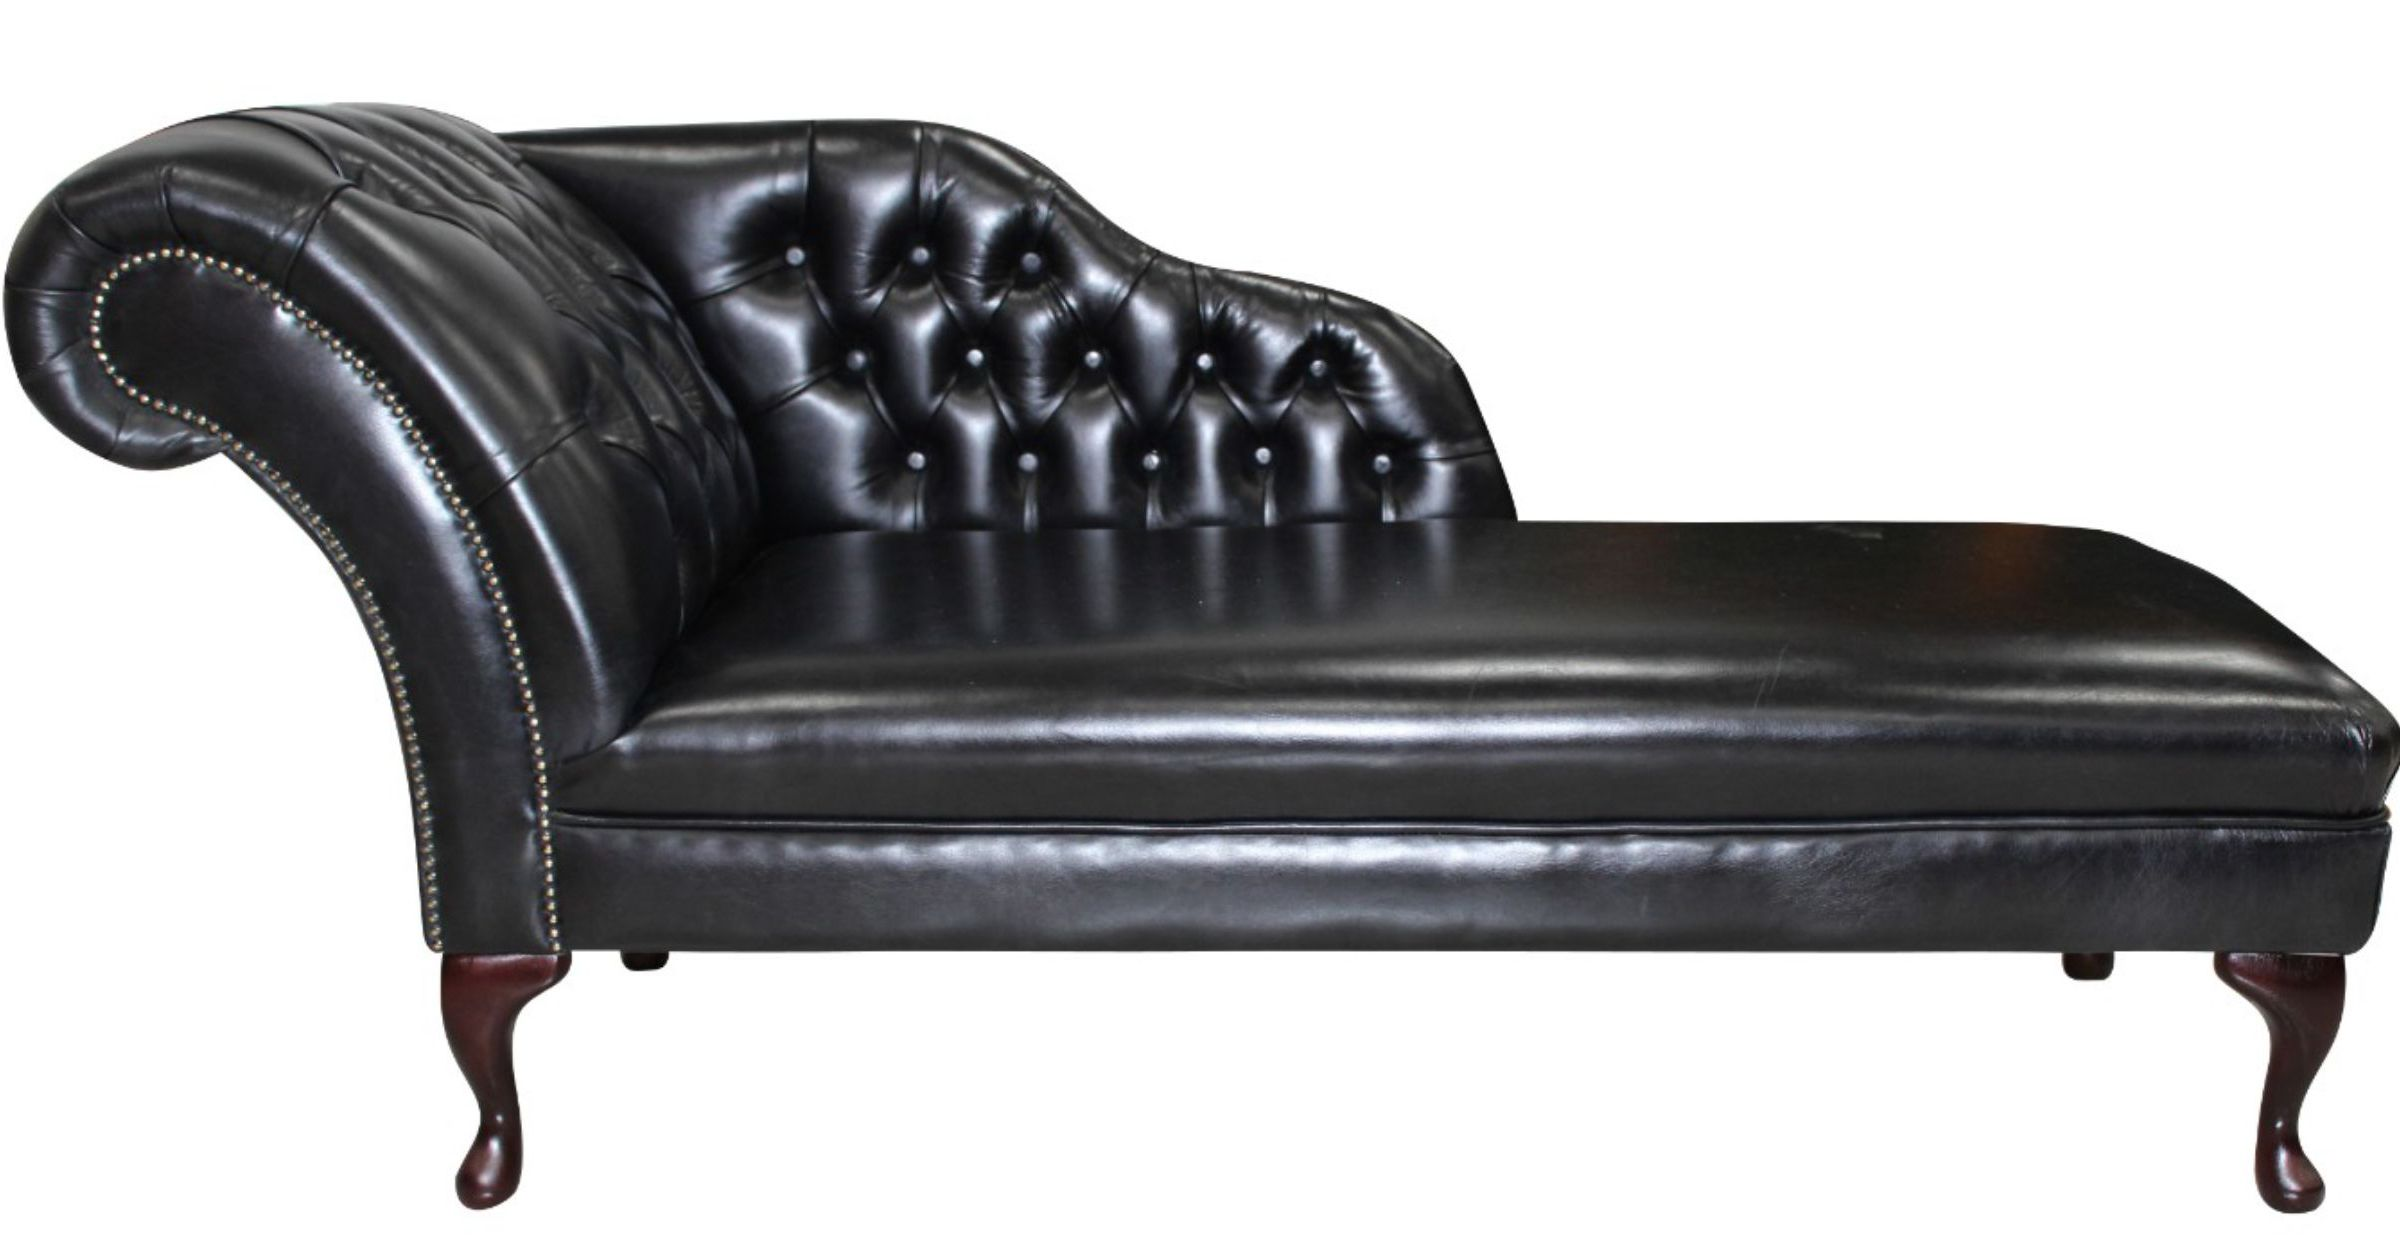 Chesterfield leather chaise lounge day bed designersofas4u for Black leather sofa chaise lounge